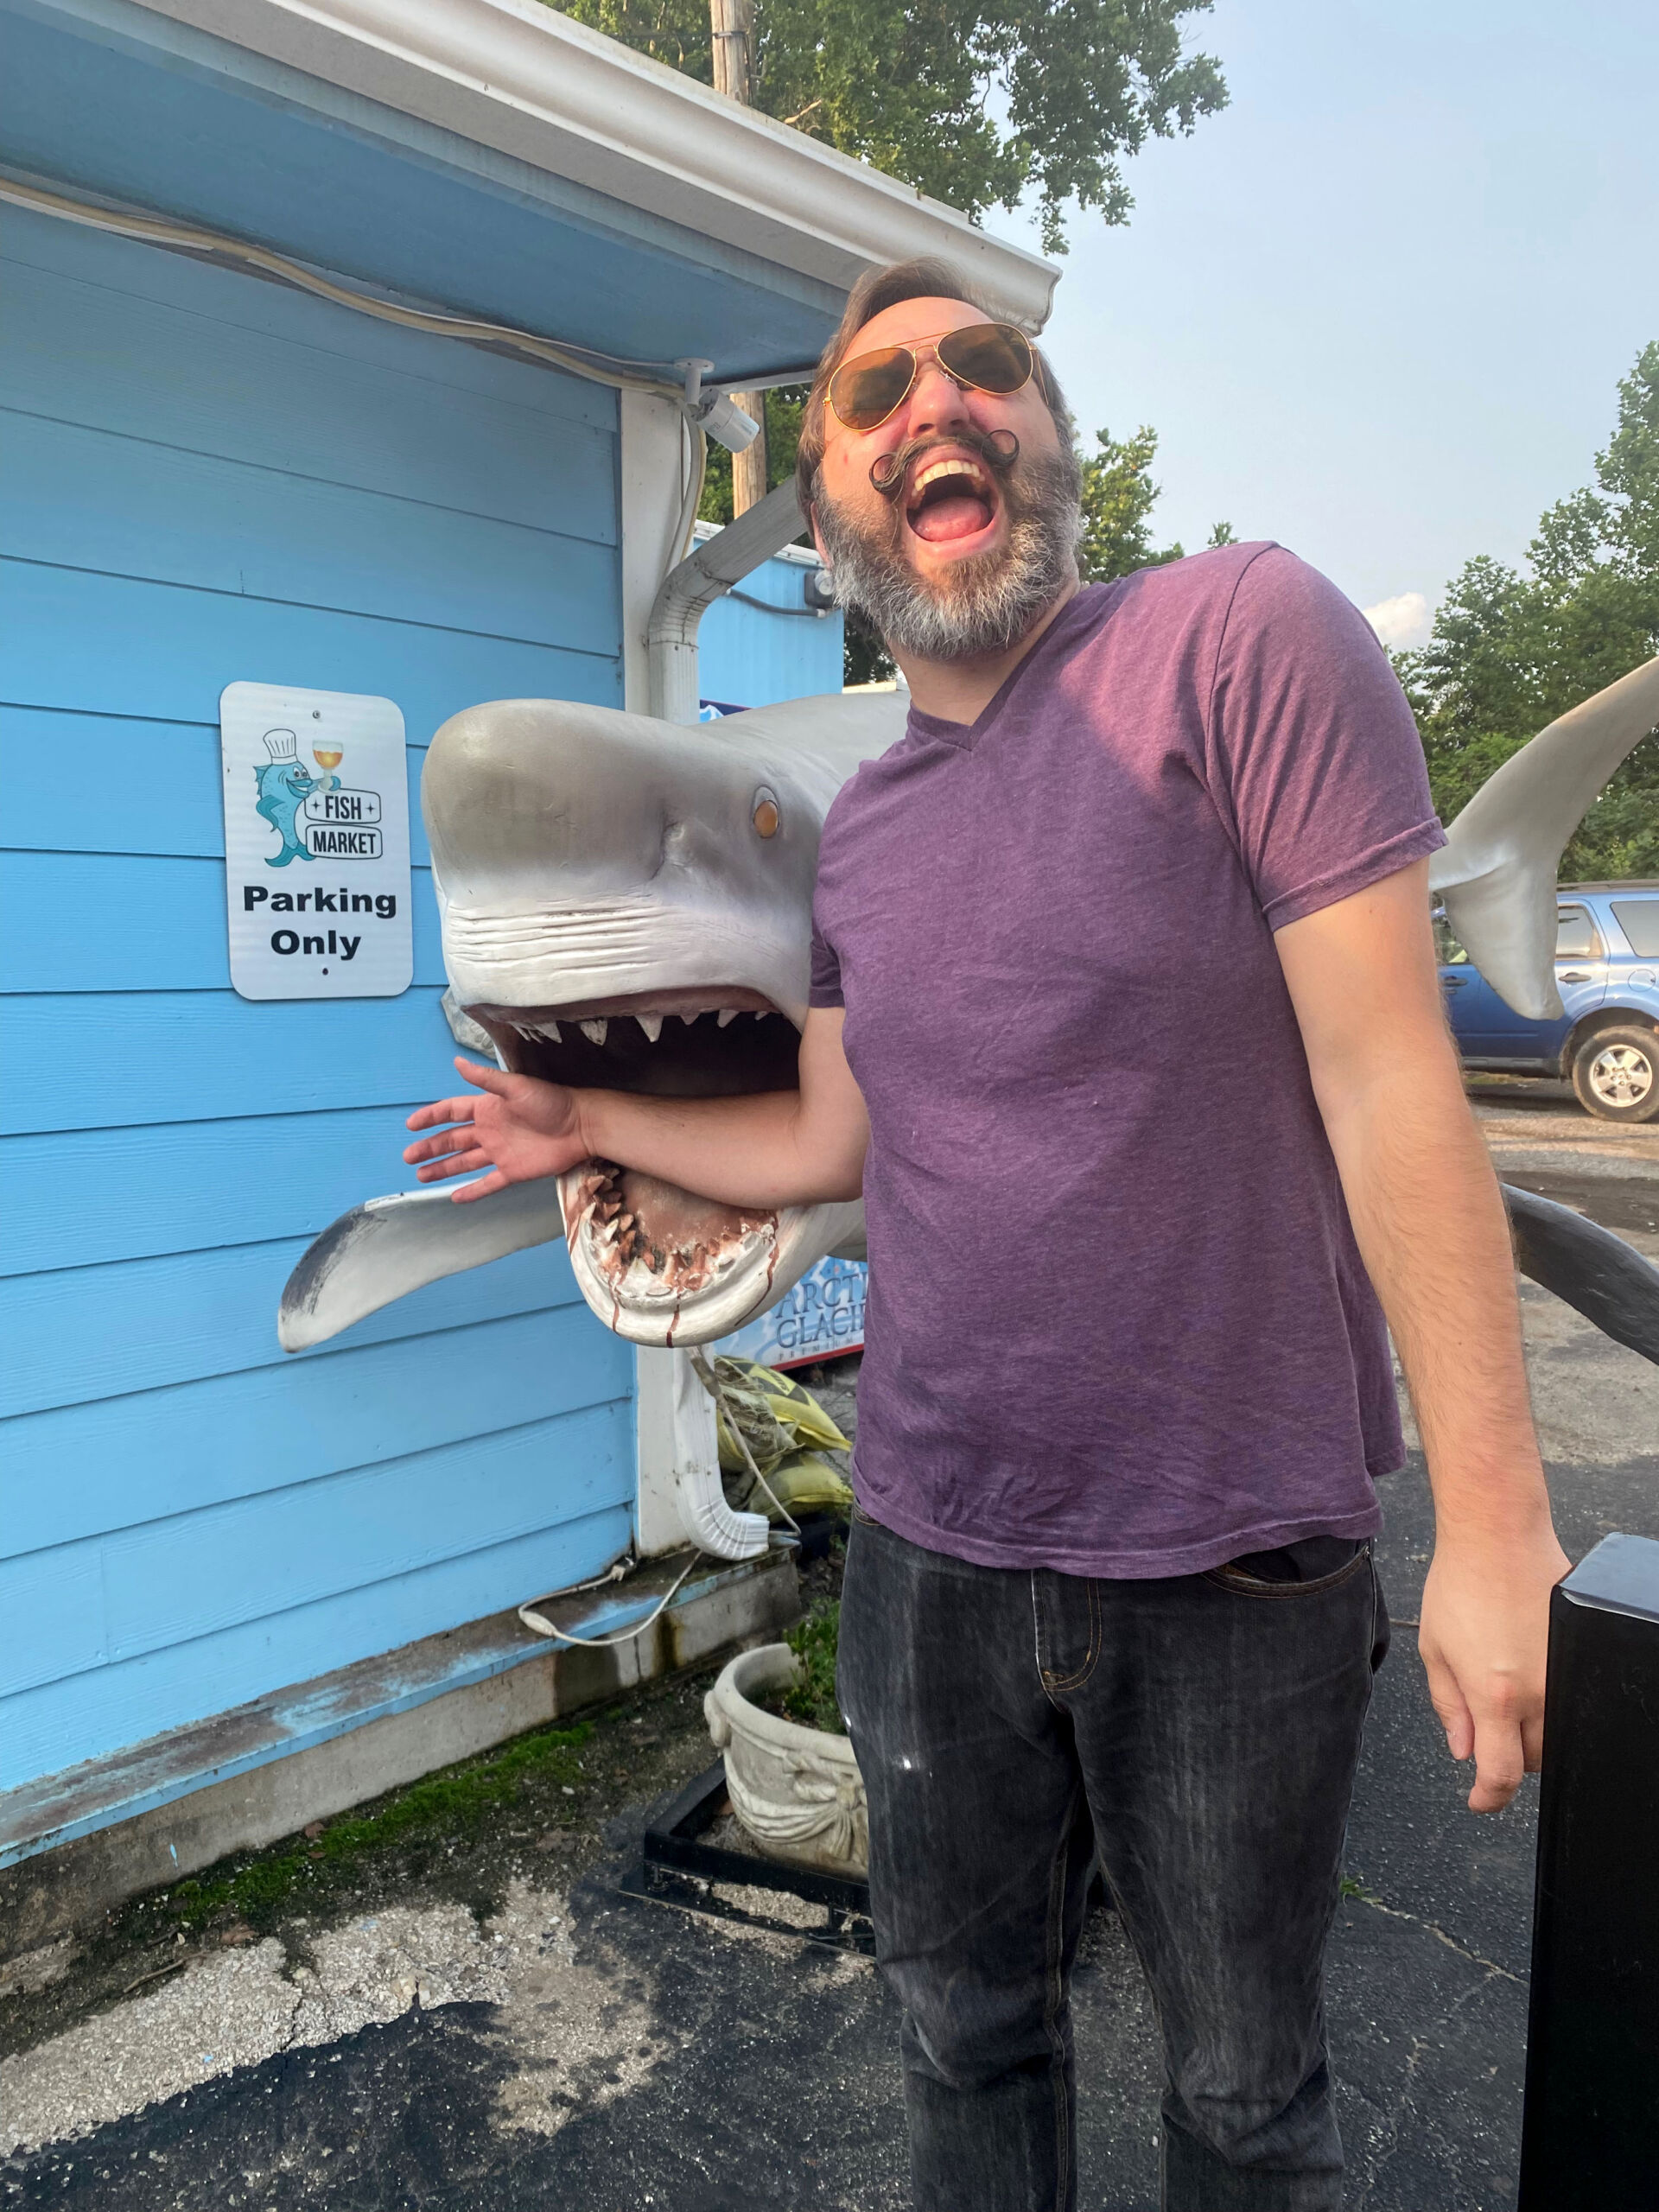 Man with mustache pretending to be bitten by shark statue at The Fish Market in Liberty, Missouri